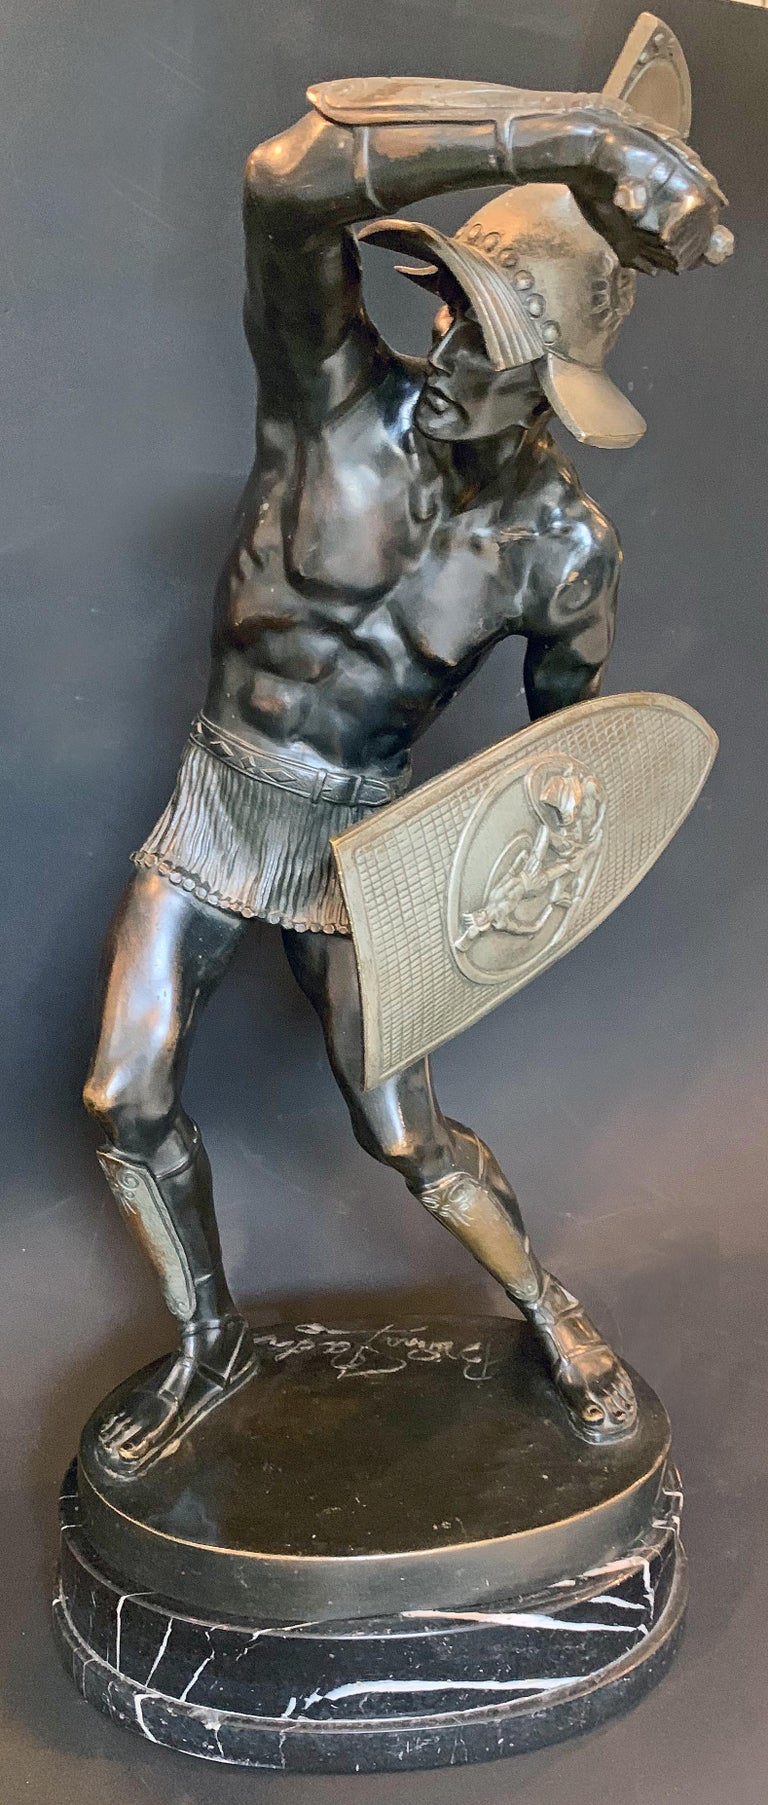 The first example of this sculpture we have seen, this striking depiction of a male gladiator -- clothed in nothing but a short mail skirt - is shown in the midst of battle, one arm raised with dagger in hand, the other holding a shield decorated